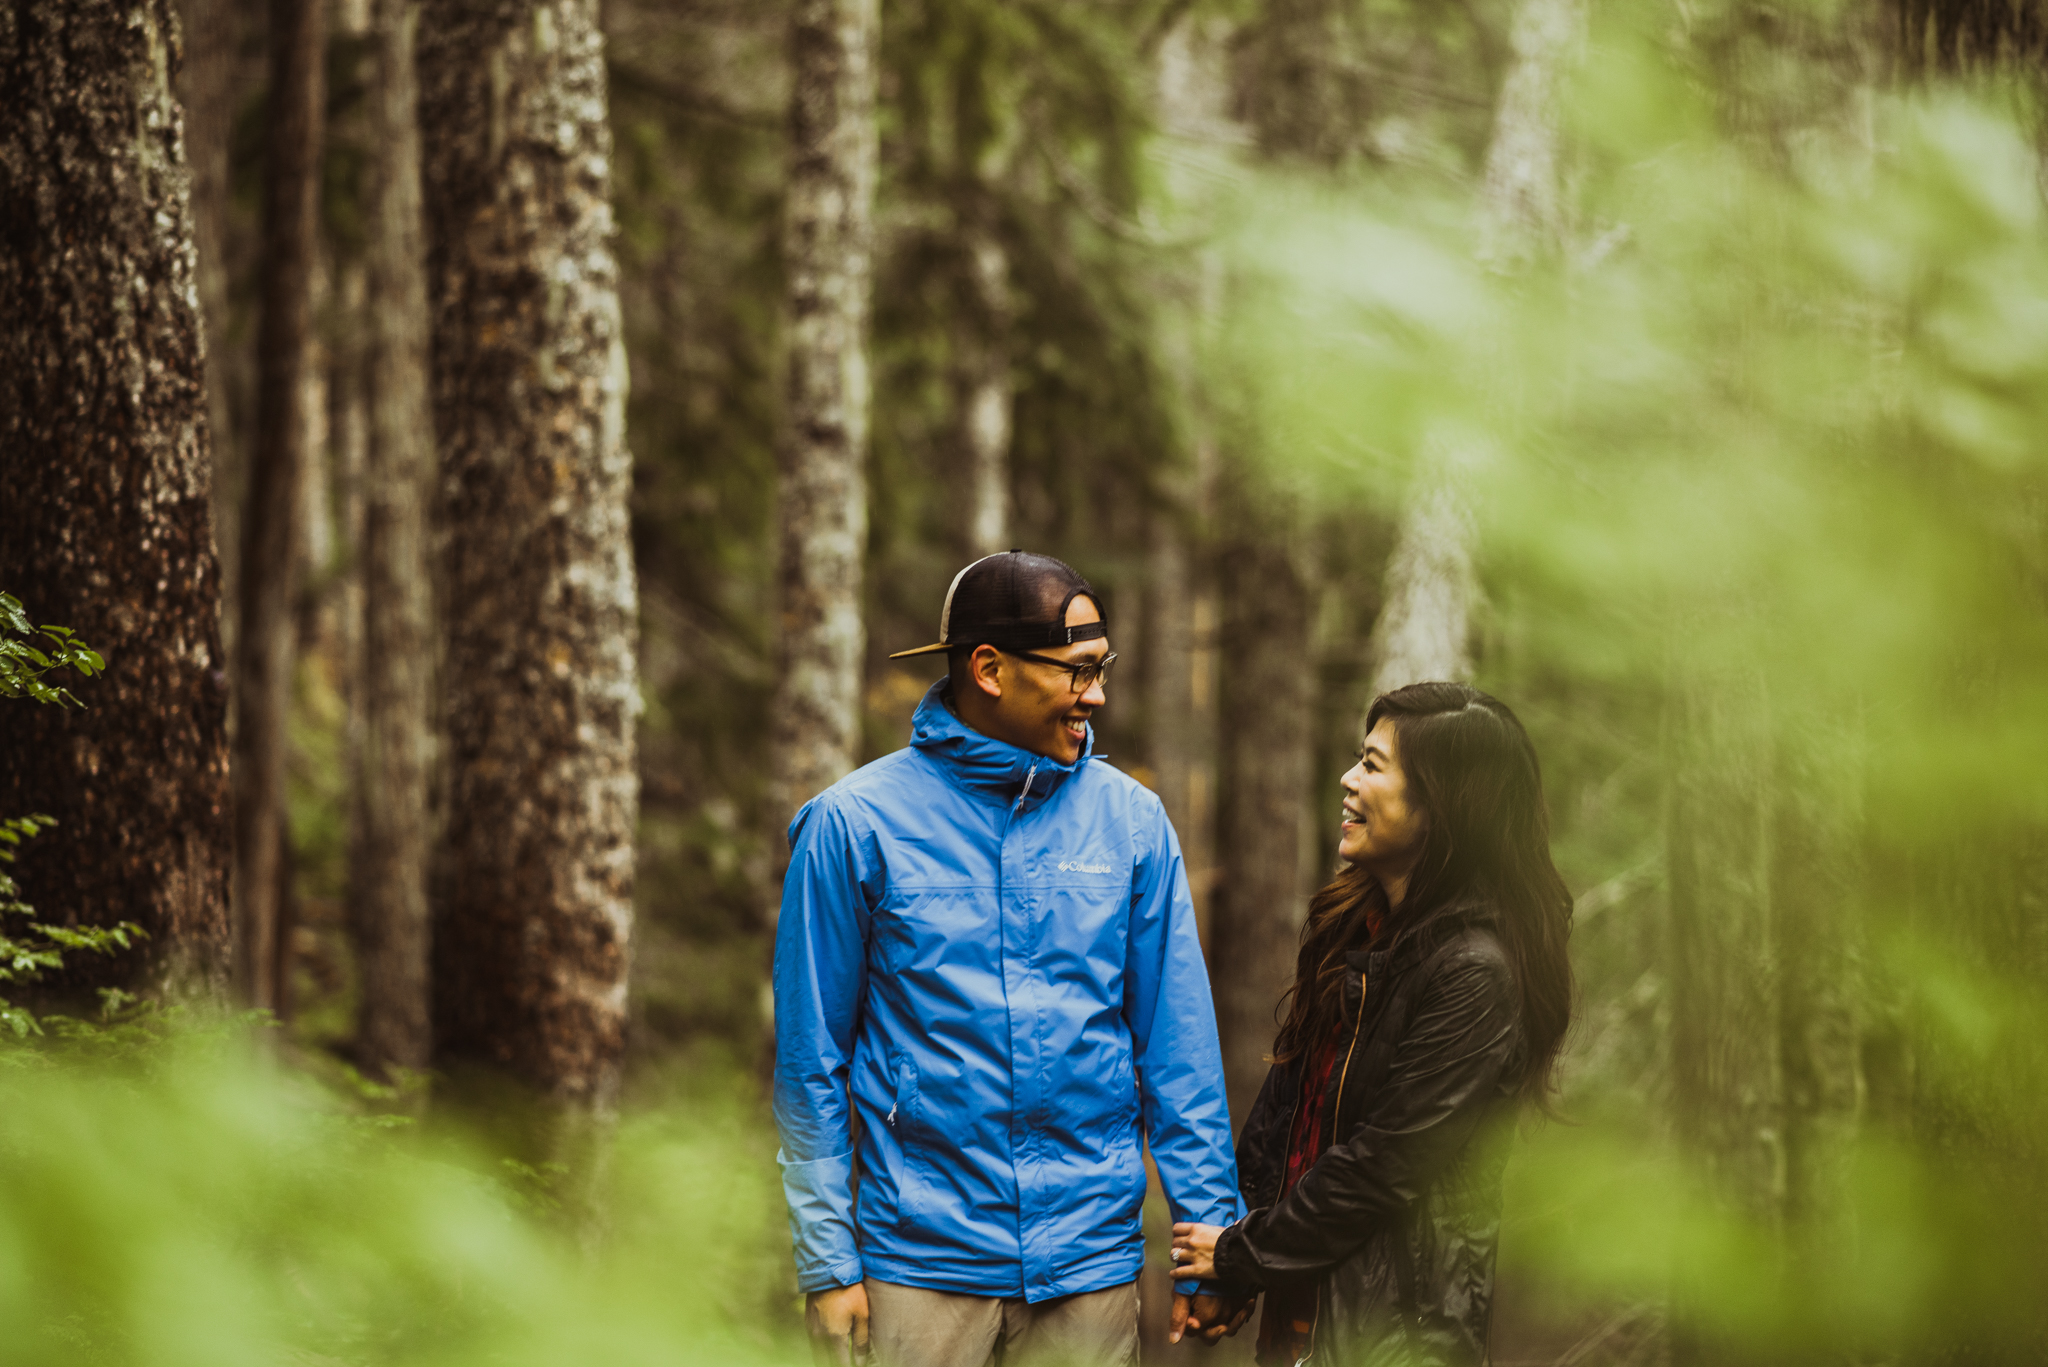 ©Isaiah-&-Taylor-Photography---Hidden-Lake-Cascade-Mountains-Engagement,-Washington-016.jpg